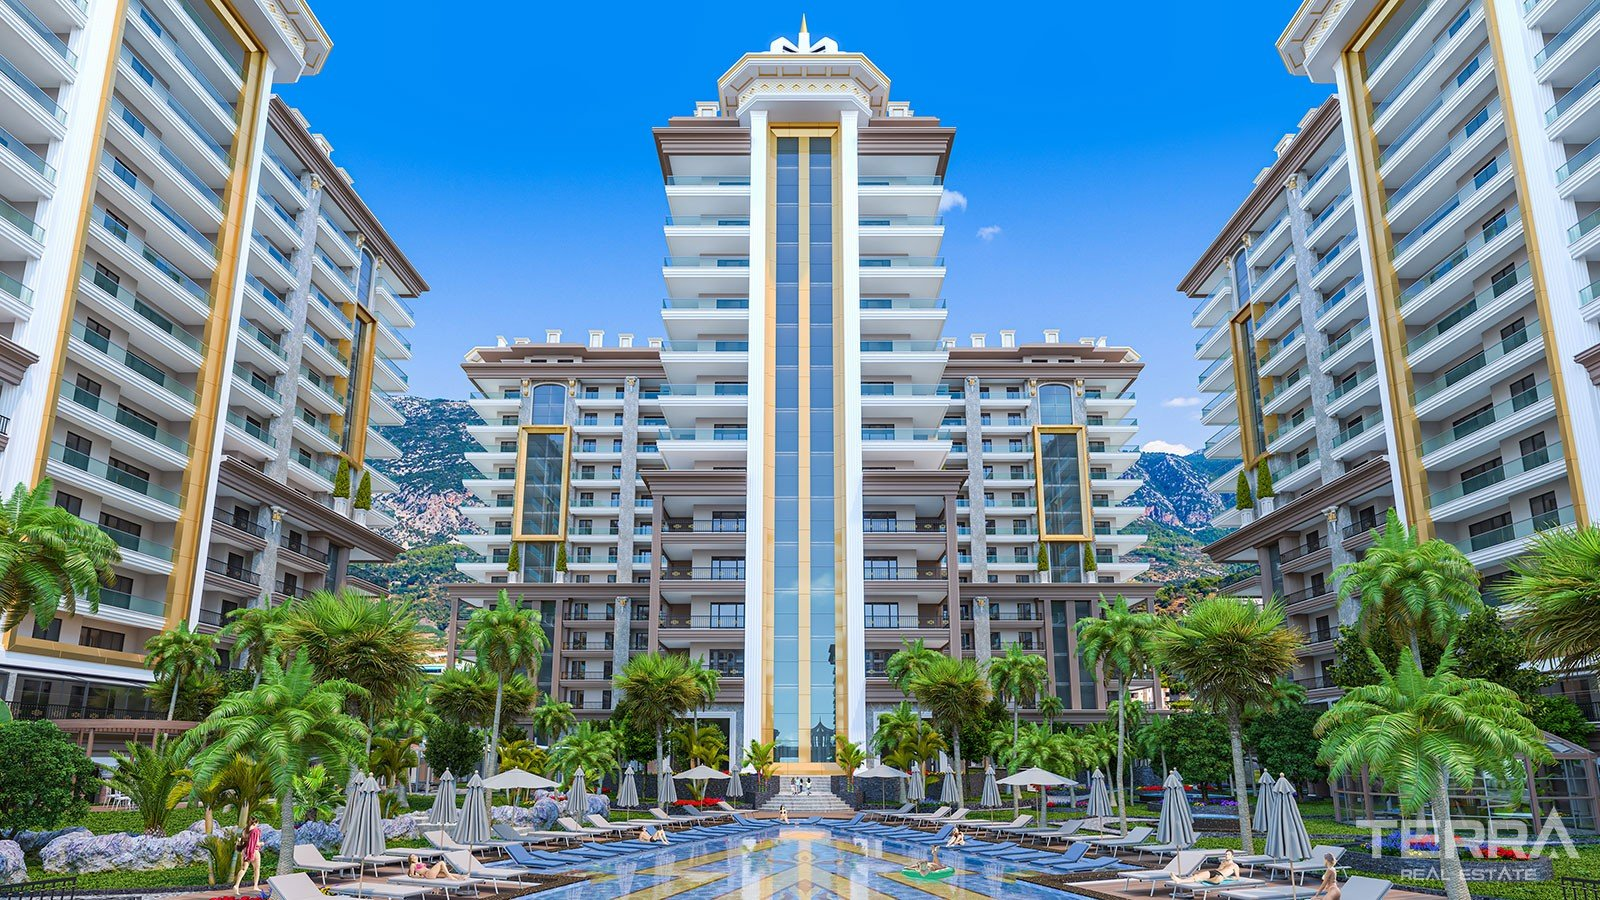 Exclusive Apartments for Sale in Alanya With Rich Social Facilities